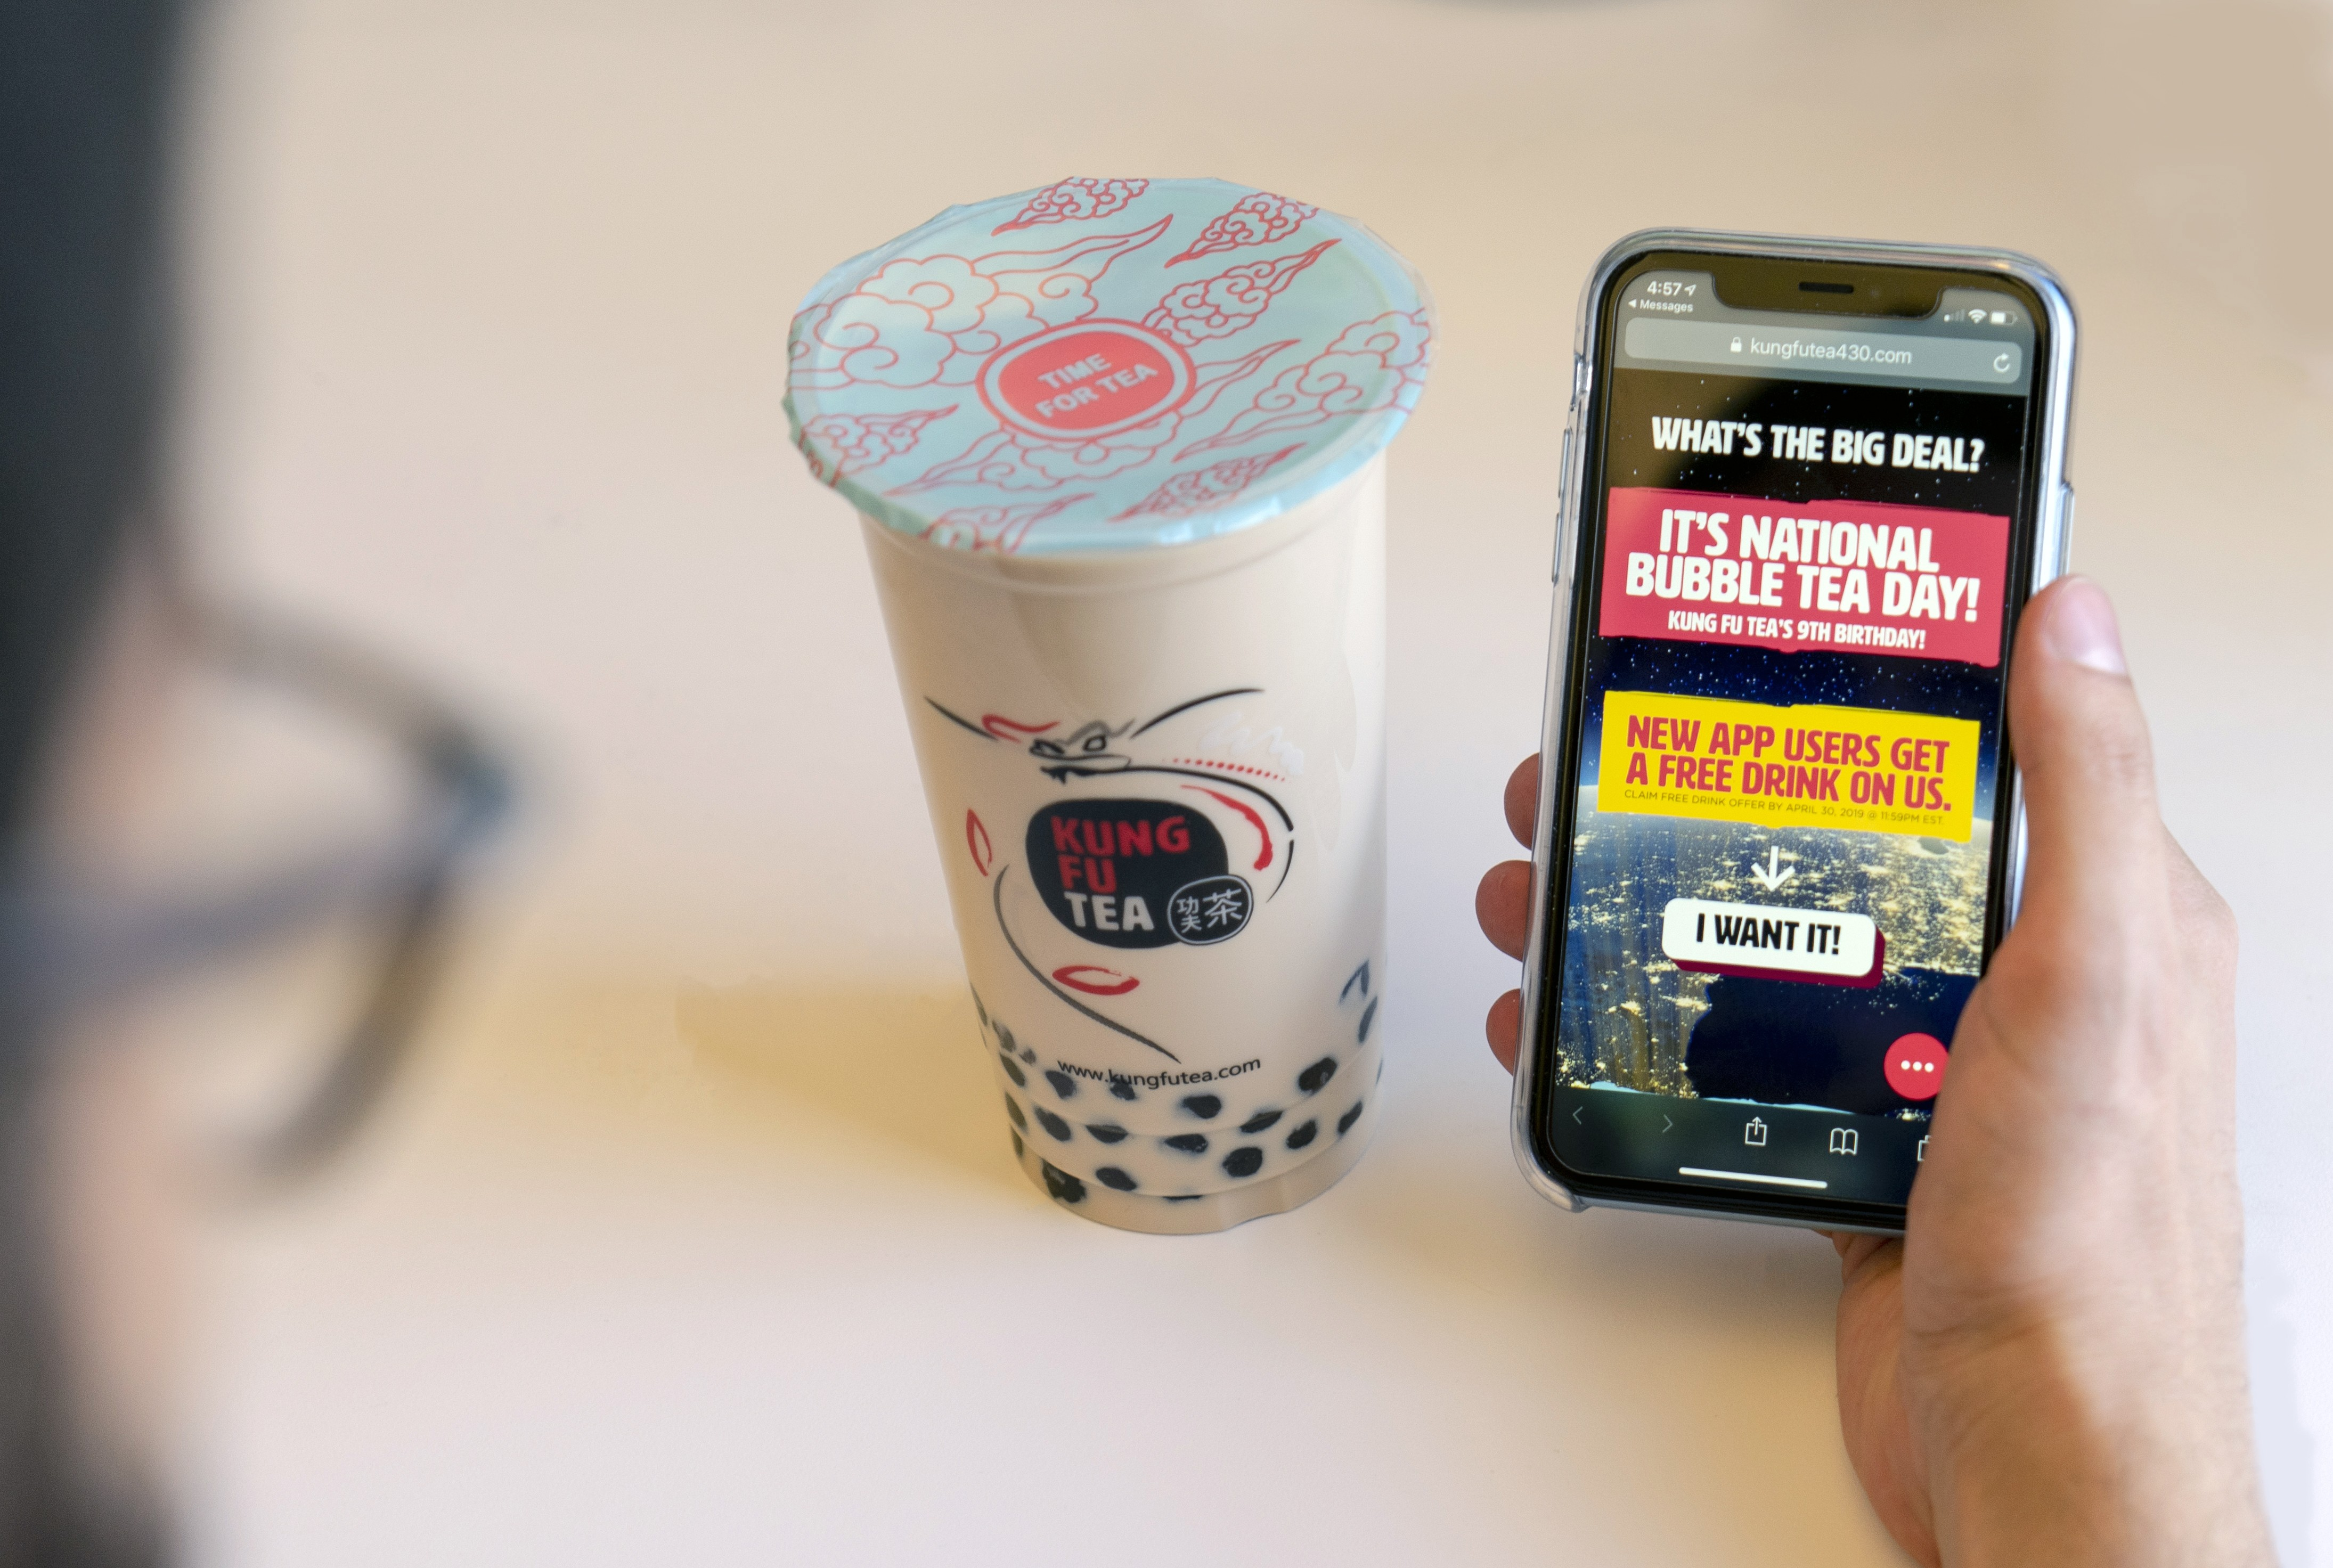 Kung Fu Tea Promises Free Boba, BOGO Specials for New App Users